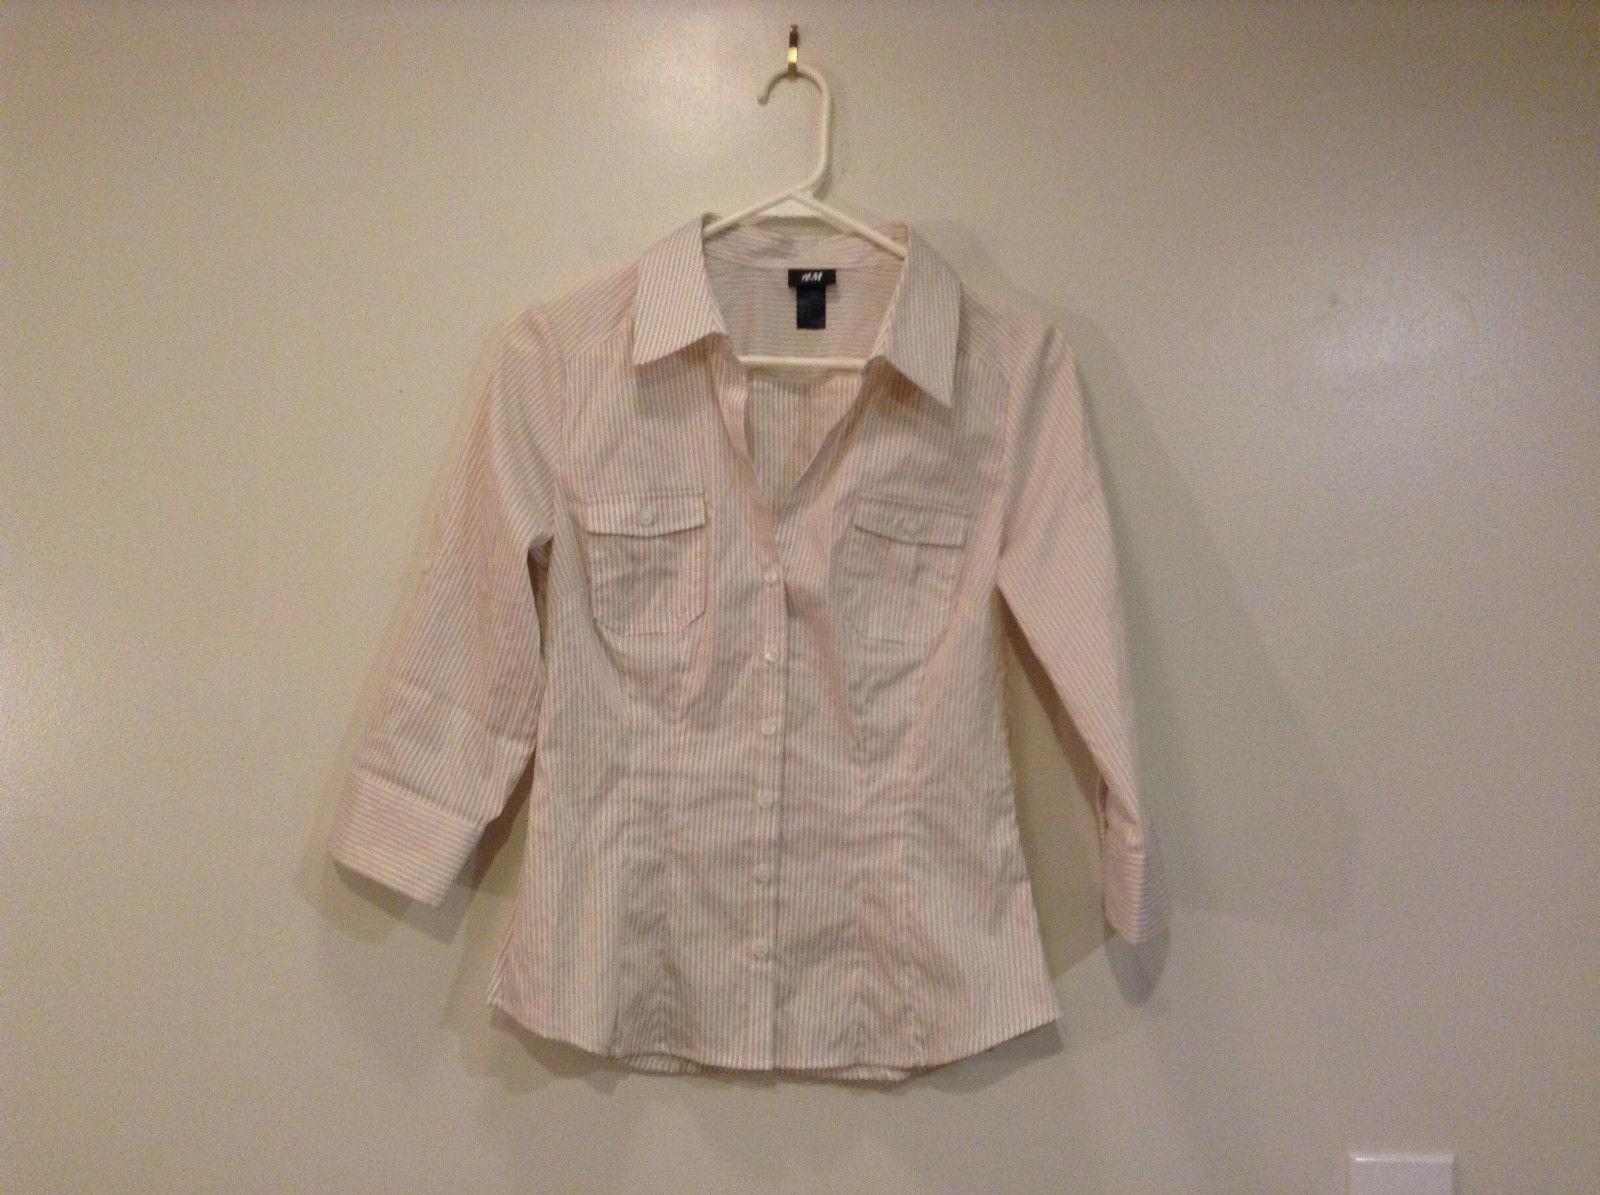 H and M Adjustable Sleeves Button Up Front Shirt White and Beige Stripes Size 8